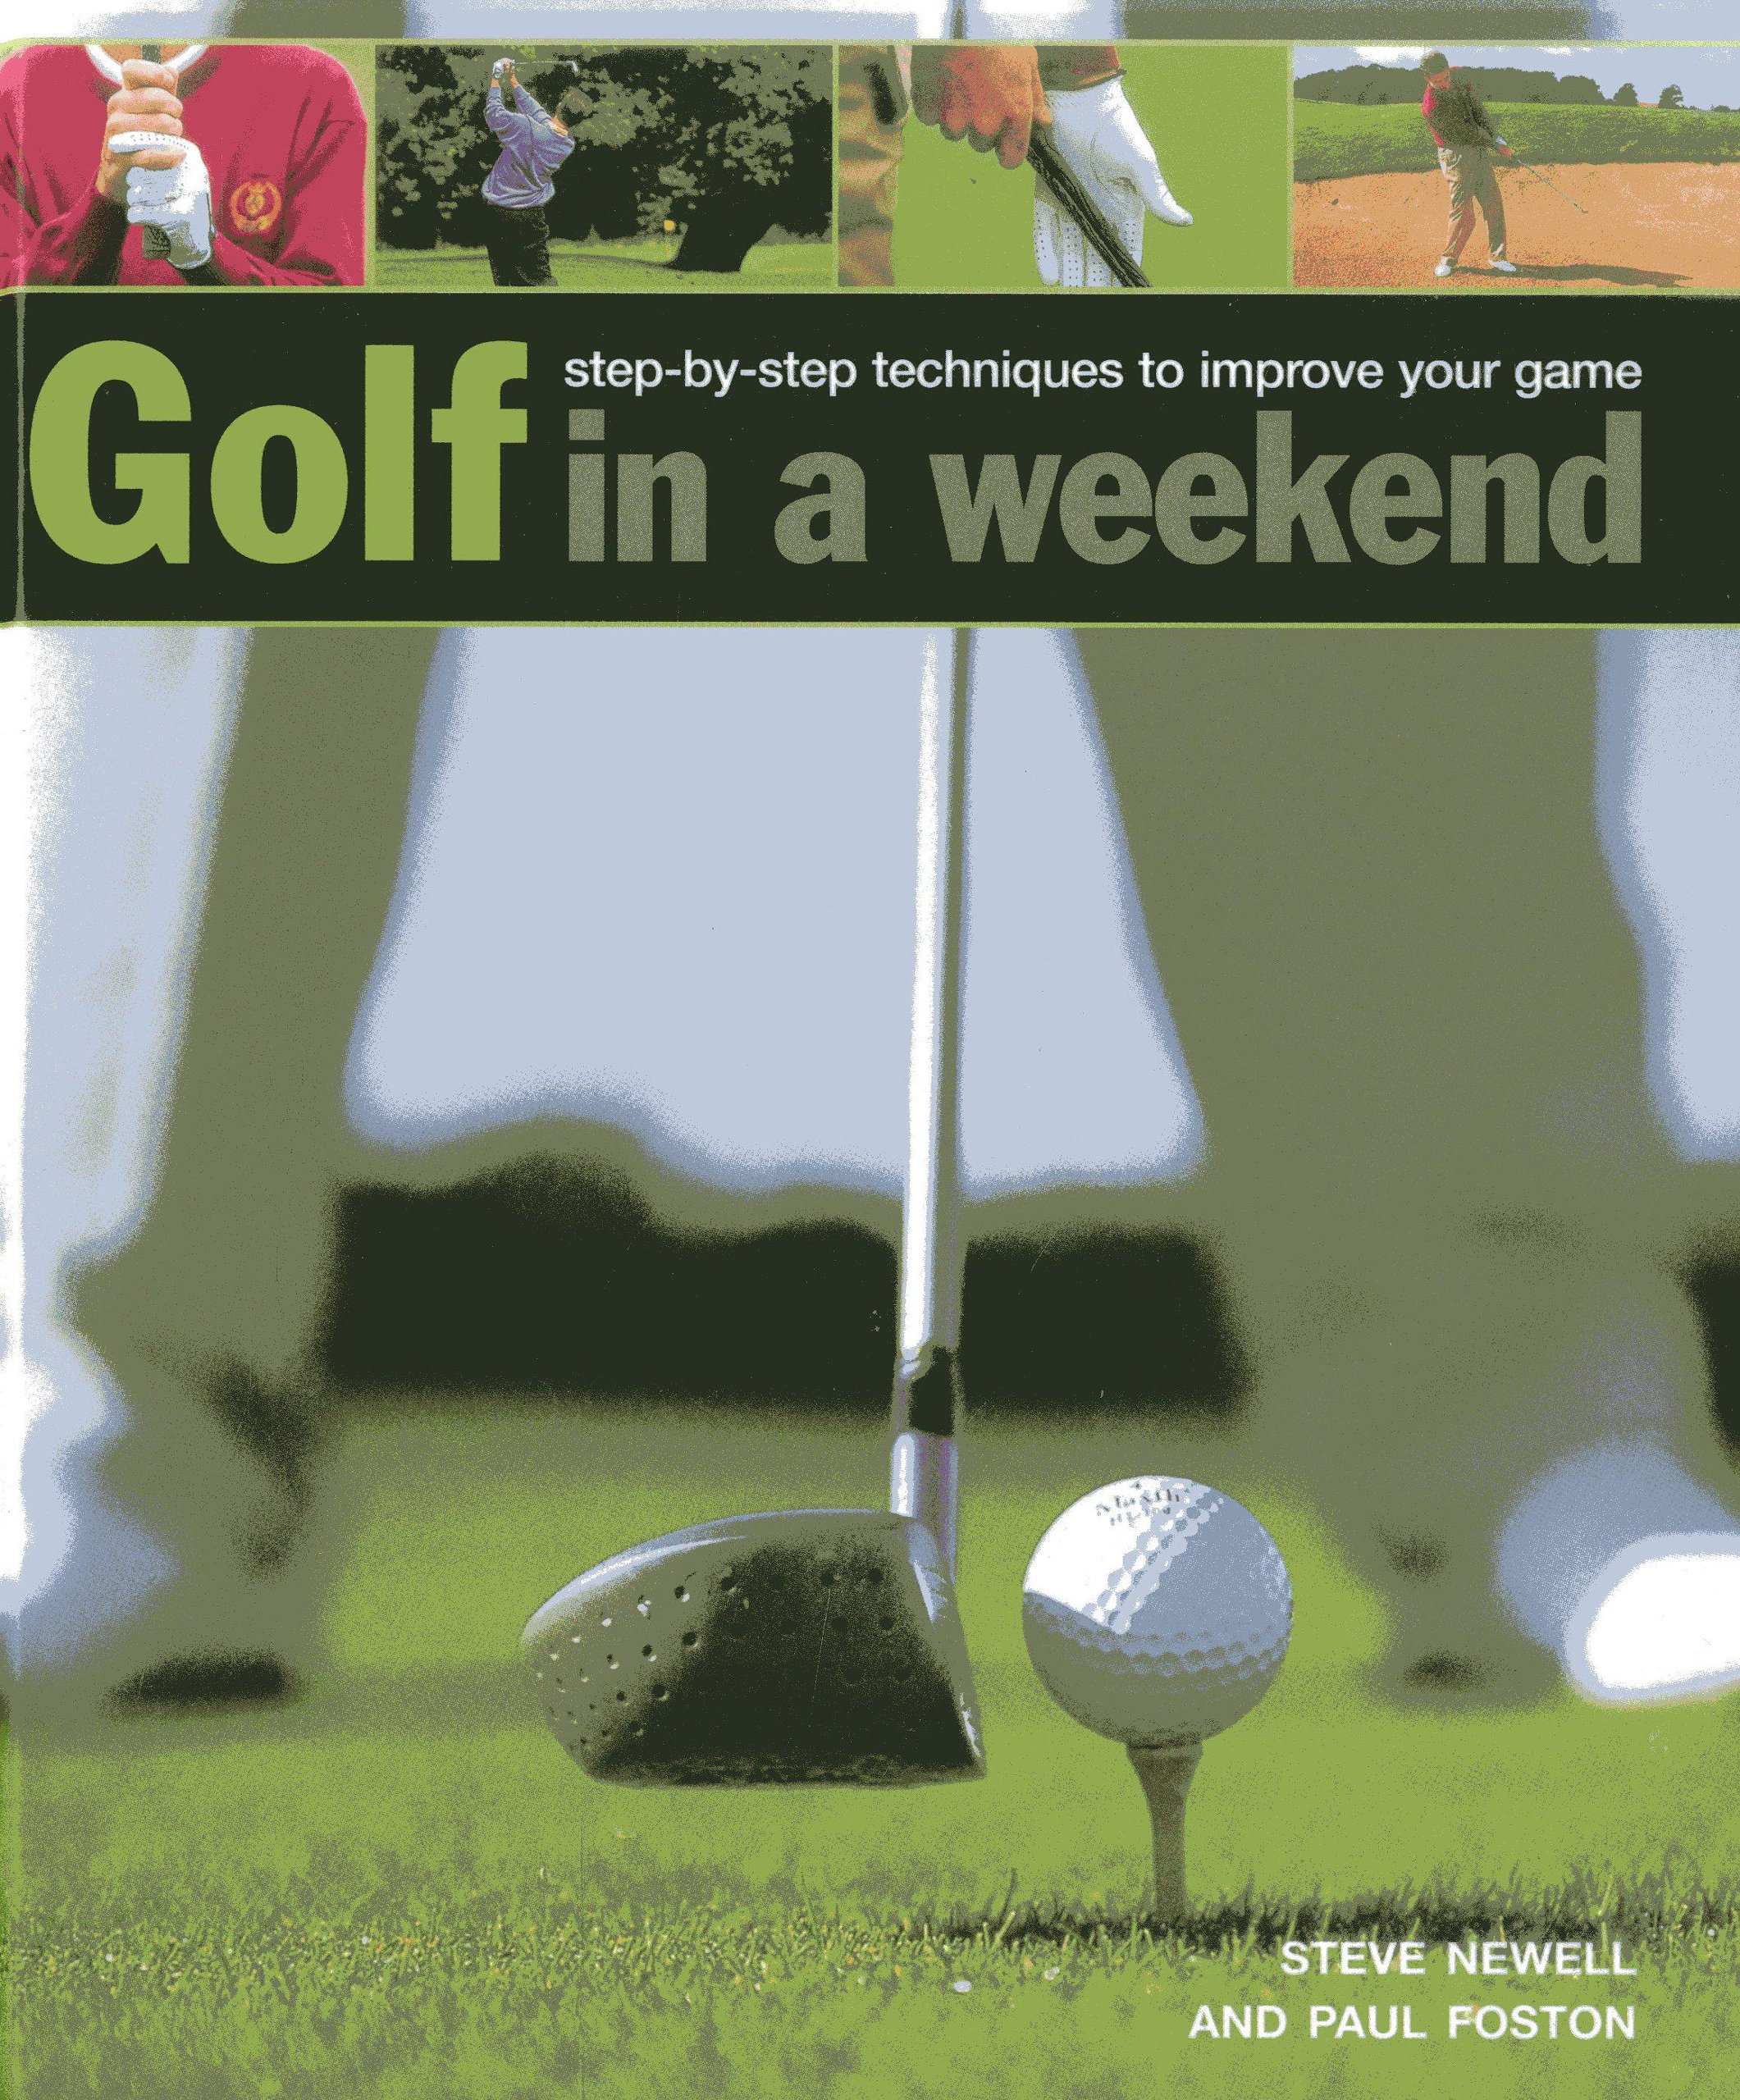 Golf in A Weekend: Step-by-Step Techniques to Improve Your Game PDF